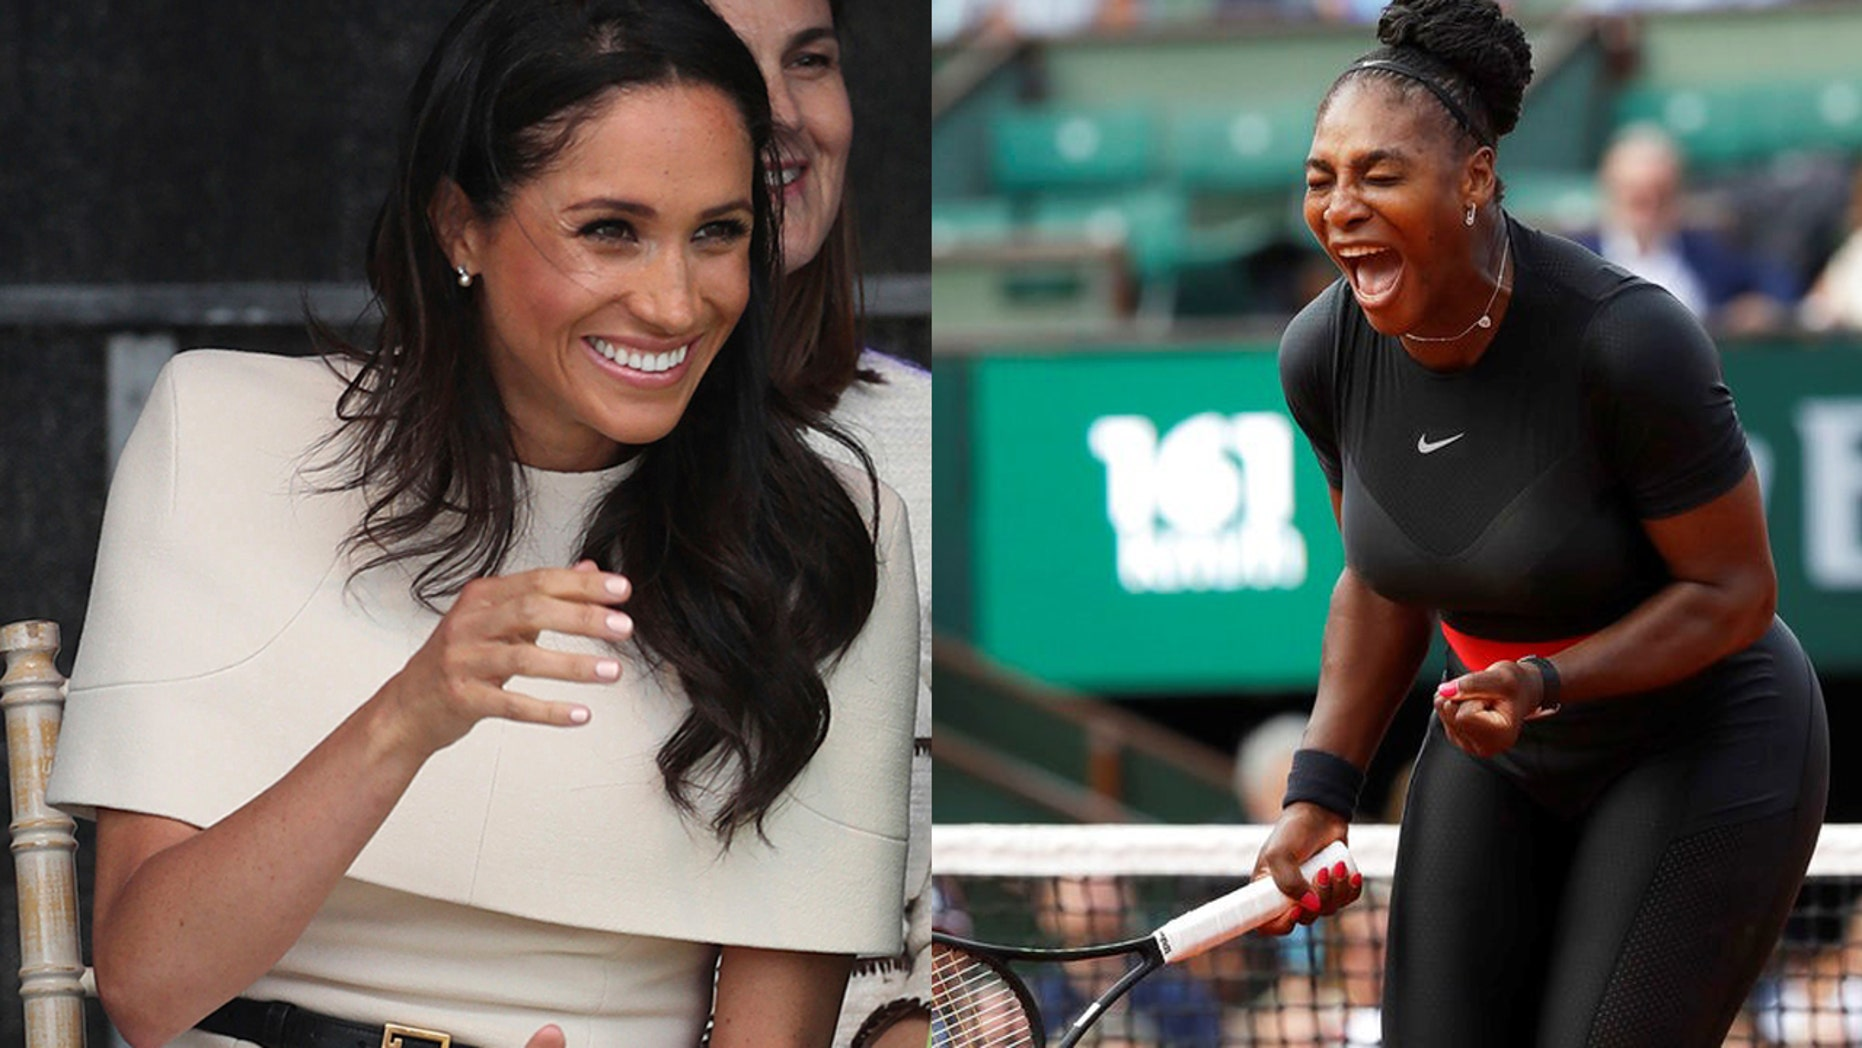 The new Duchess of Sussex may have shared her royal baby's gender with her friend Serena Williams